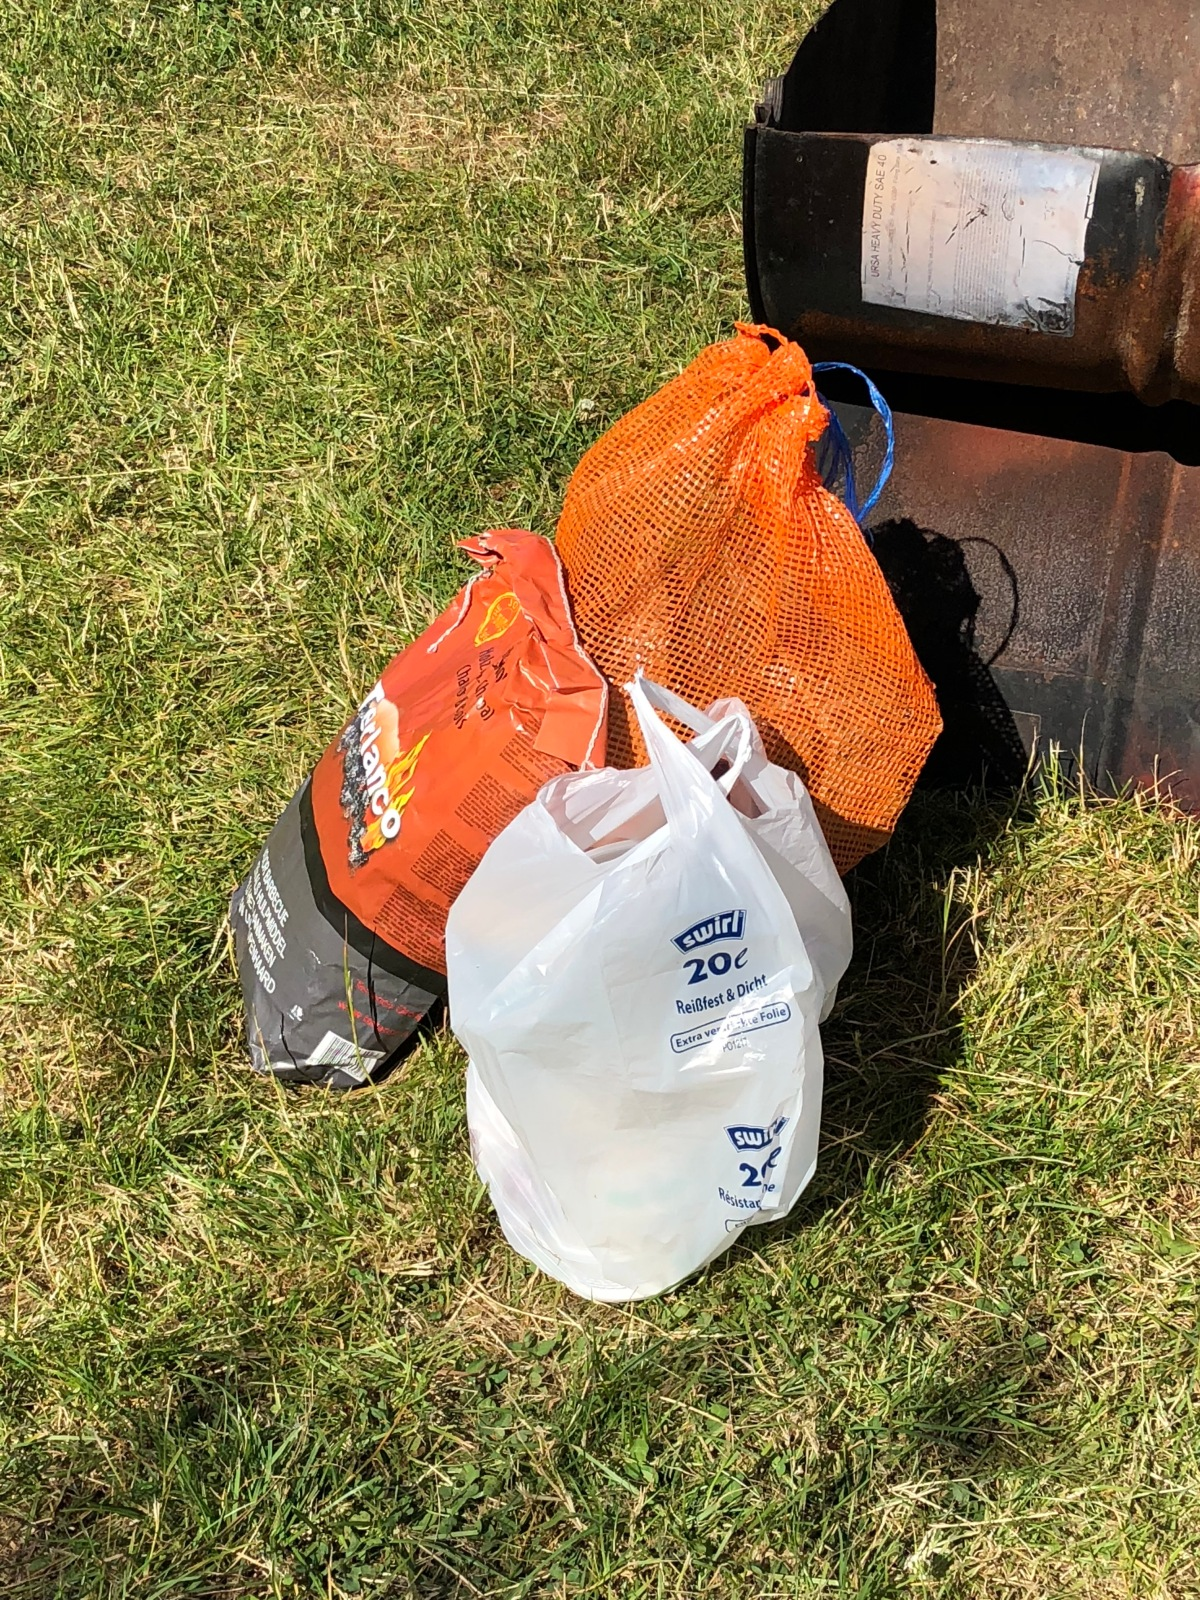 The firewood, BBQ charcoal, and the food packet